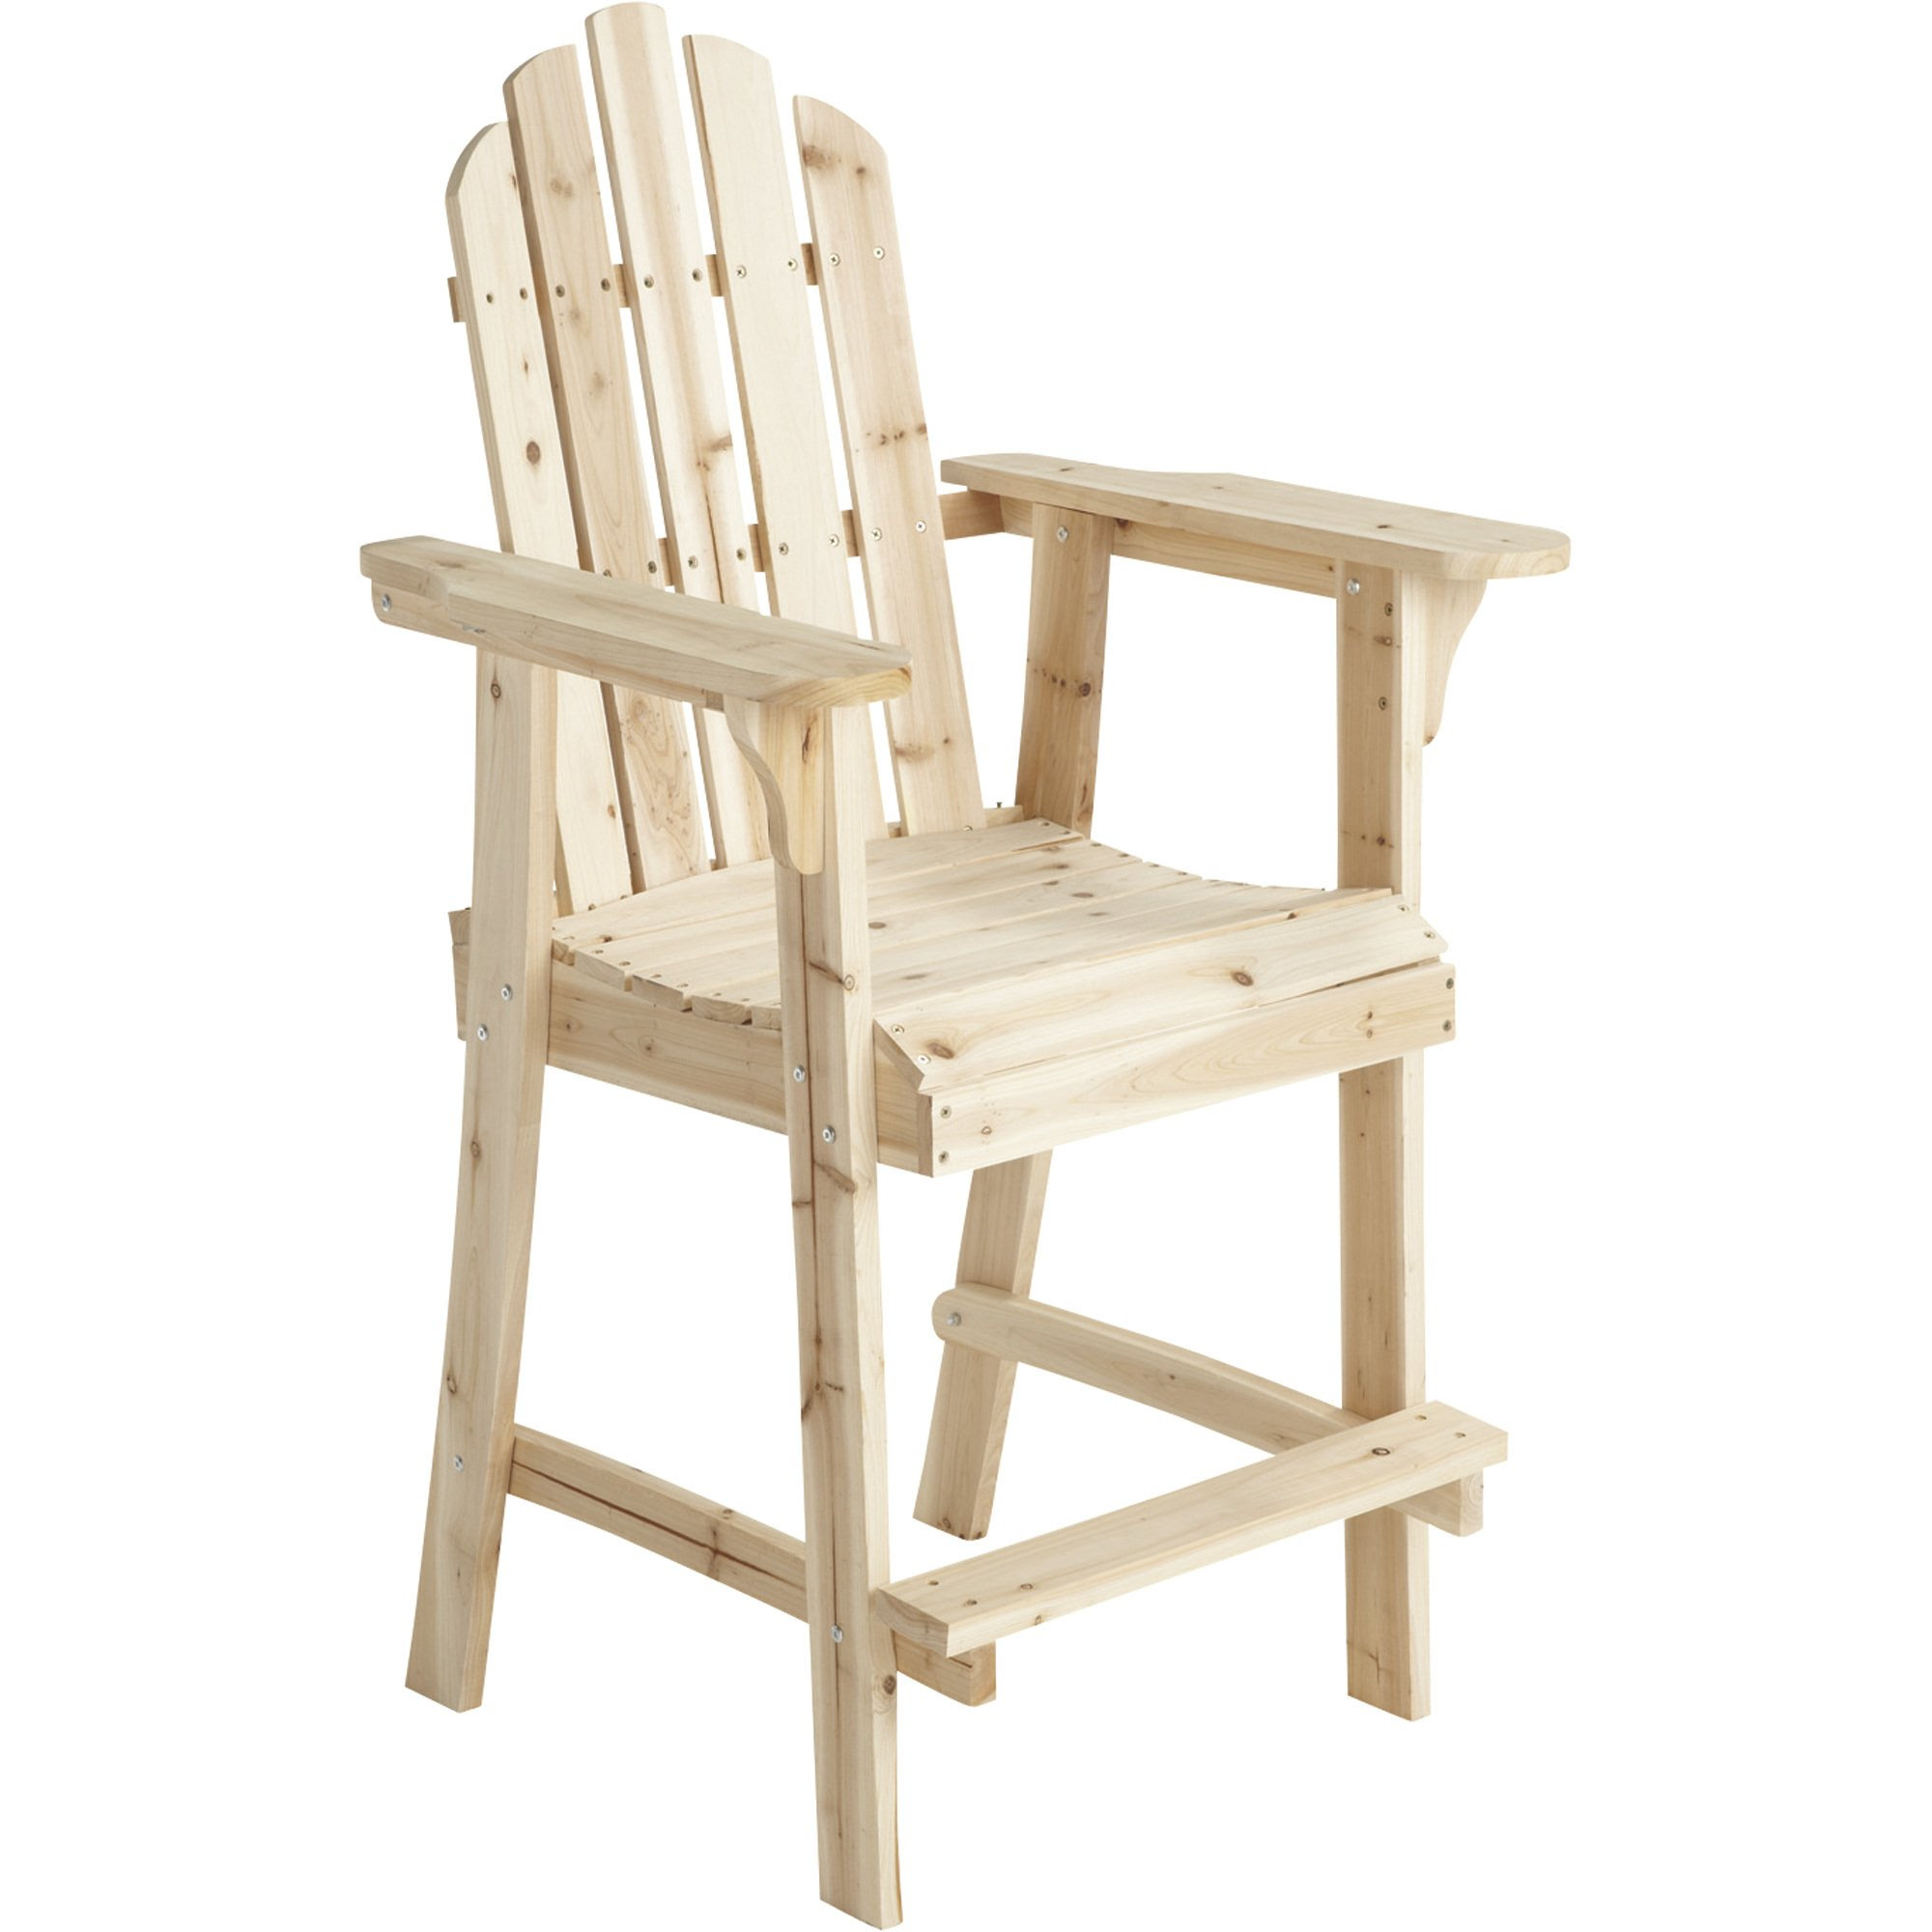 Stonegate Designs Tall Fir Wood Adirondack Chair 30in L X 25 1 2in